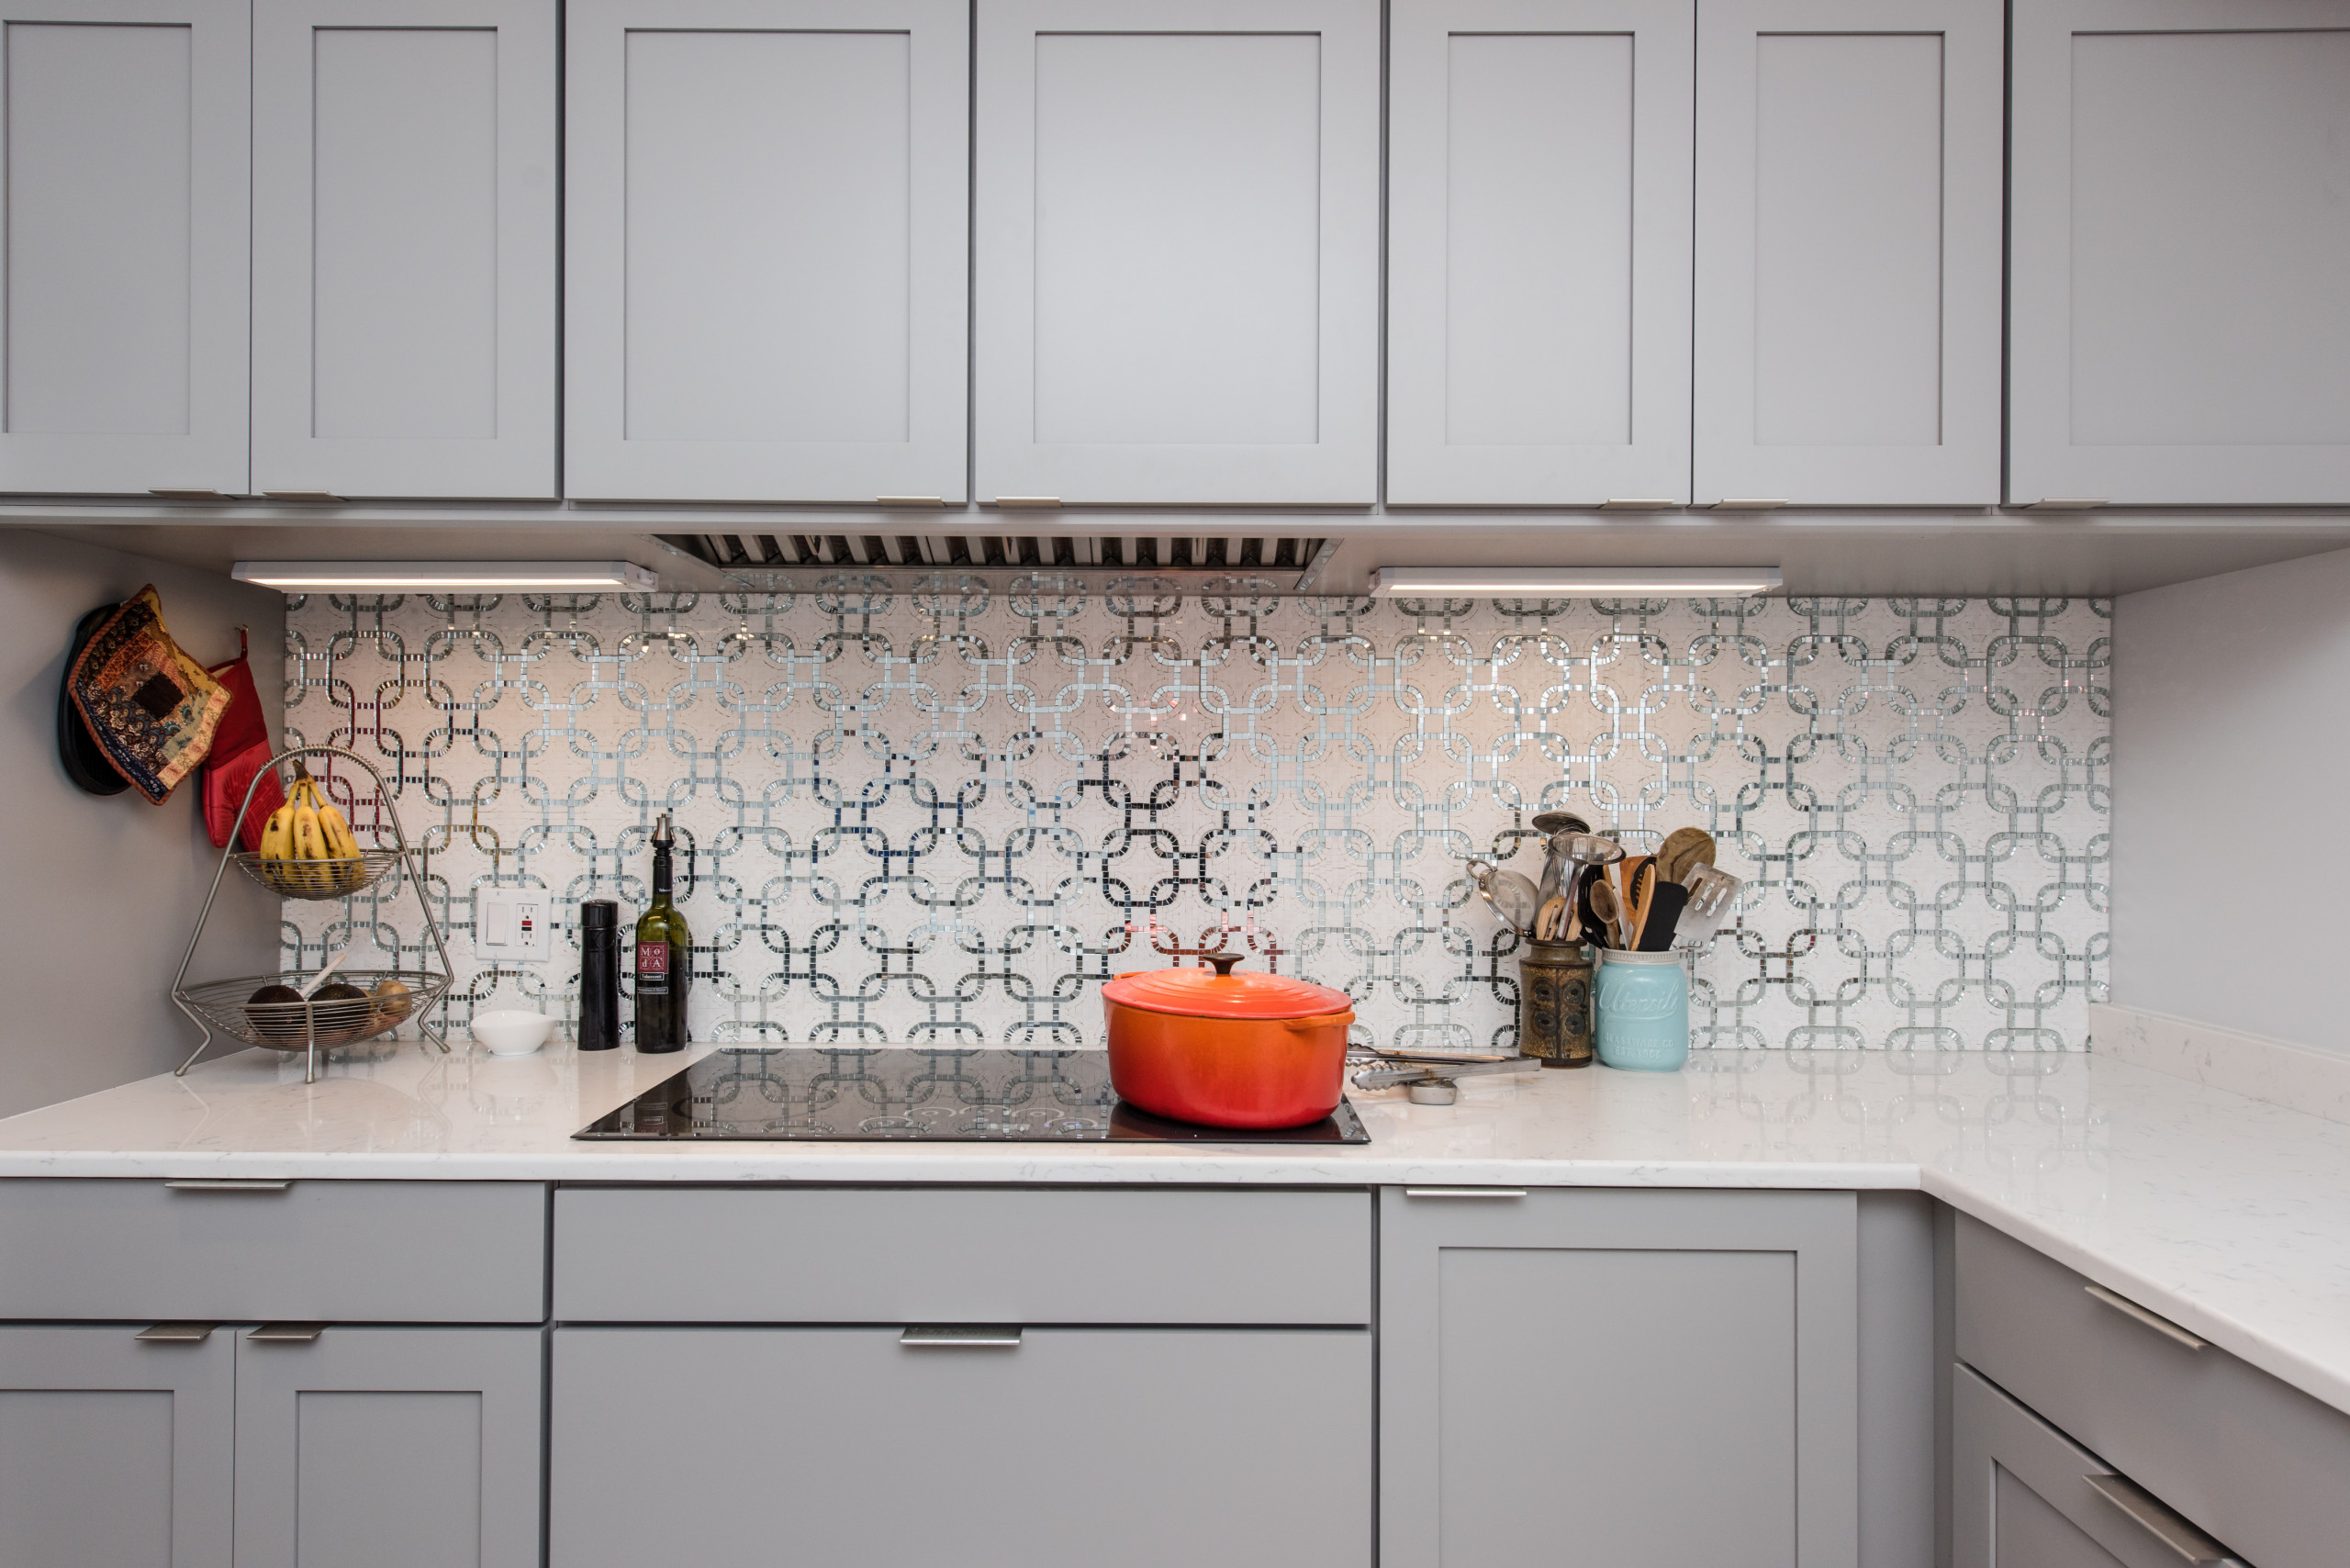 Full-Depth Wall Cabinets from Wellborn in Dove Finish